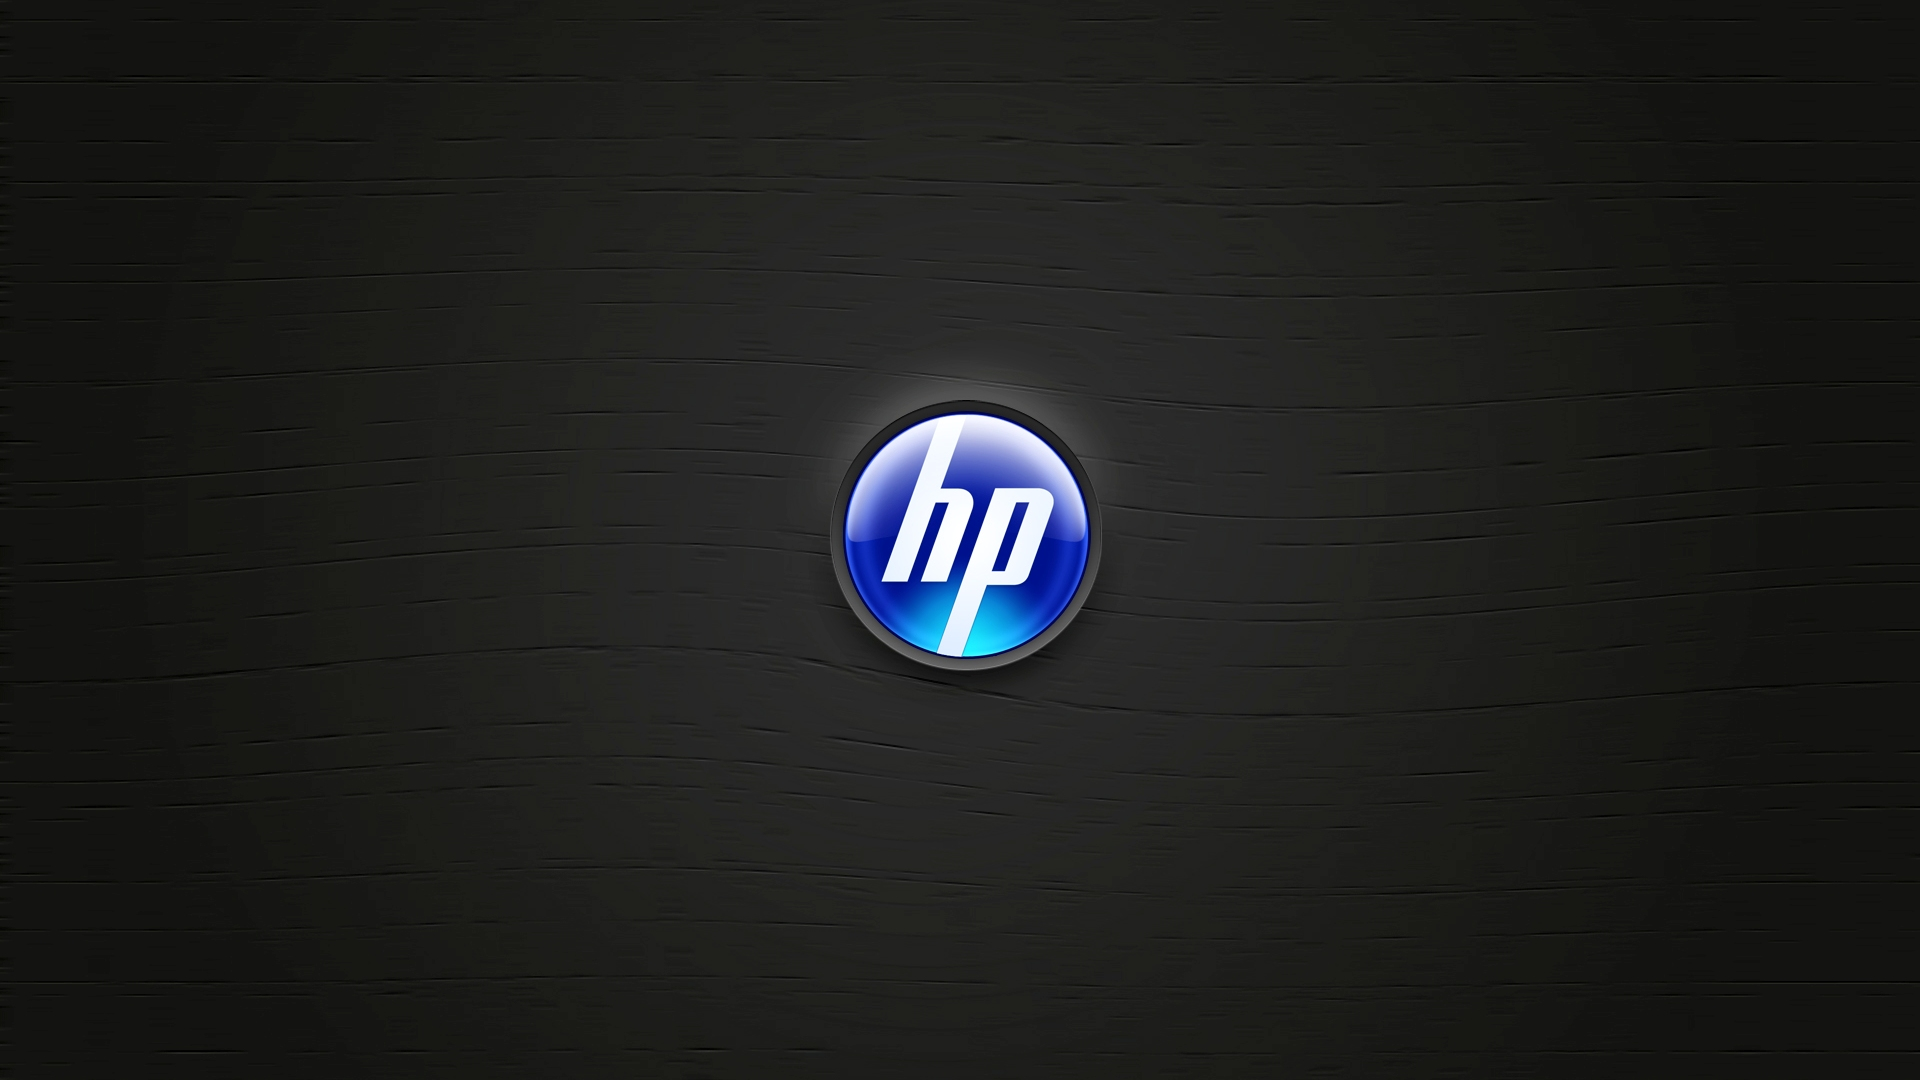 HP 3D Wallpapers Group  79   Wallpaper Hp